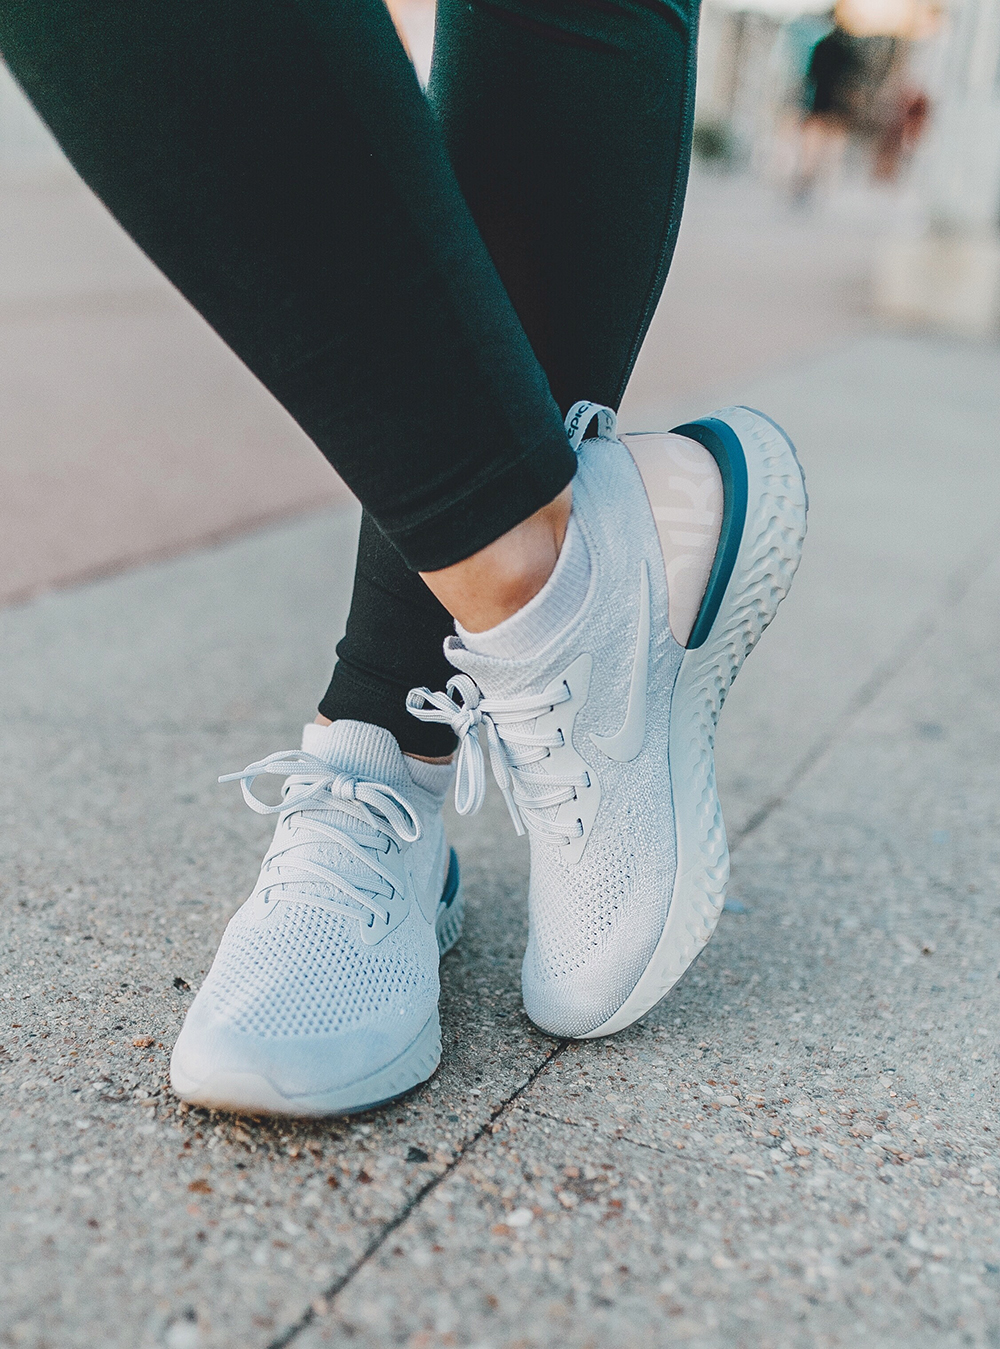 livvyland-blog-olivia-watson-austin-texas-lamar-bridge-maternity-pregnancy-workout-outfit-leggings-nordstrom-nike-flyknit-epic-react-1